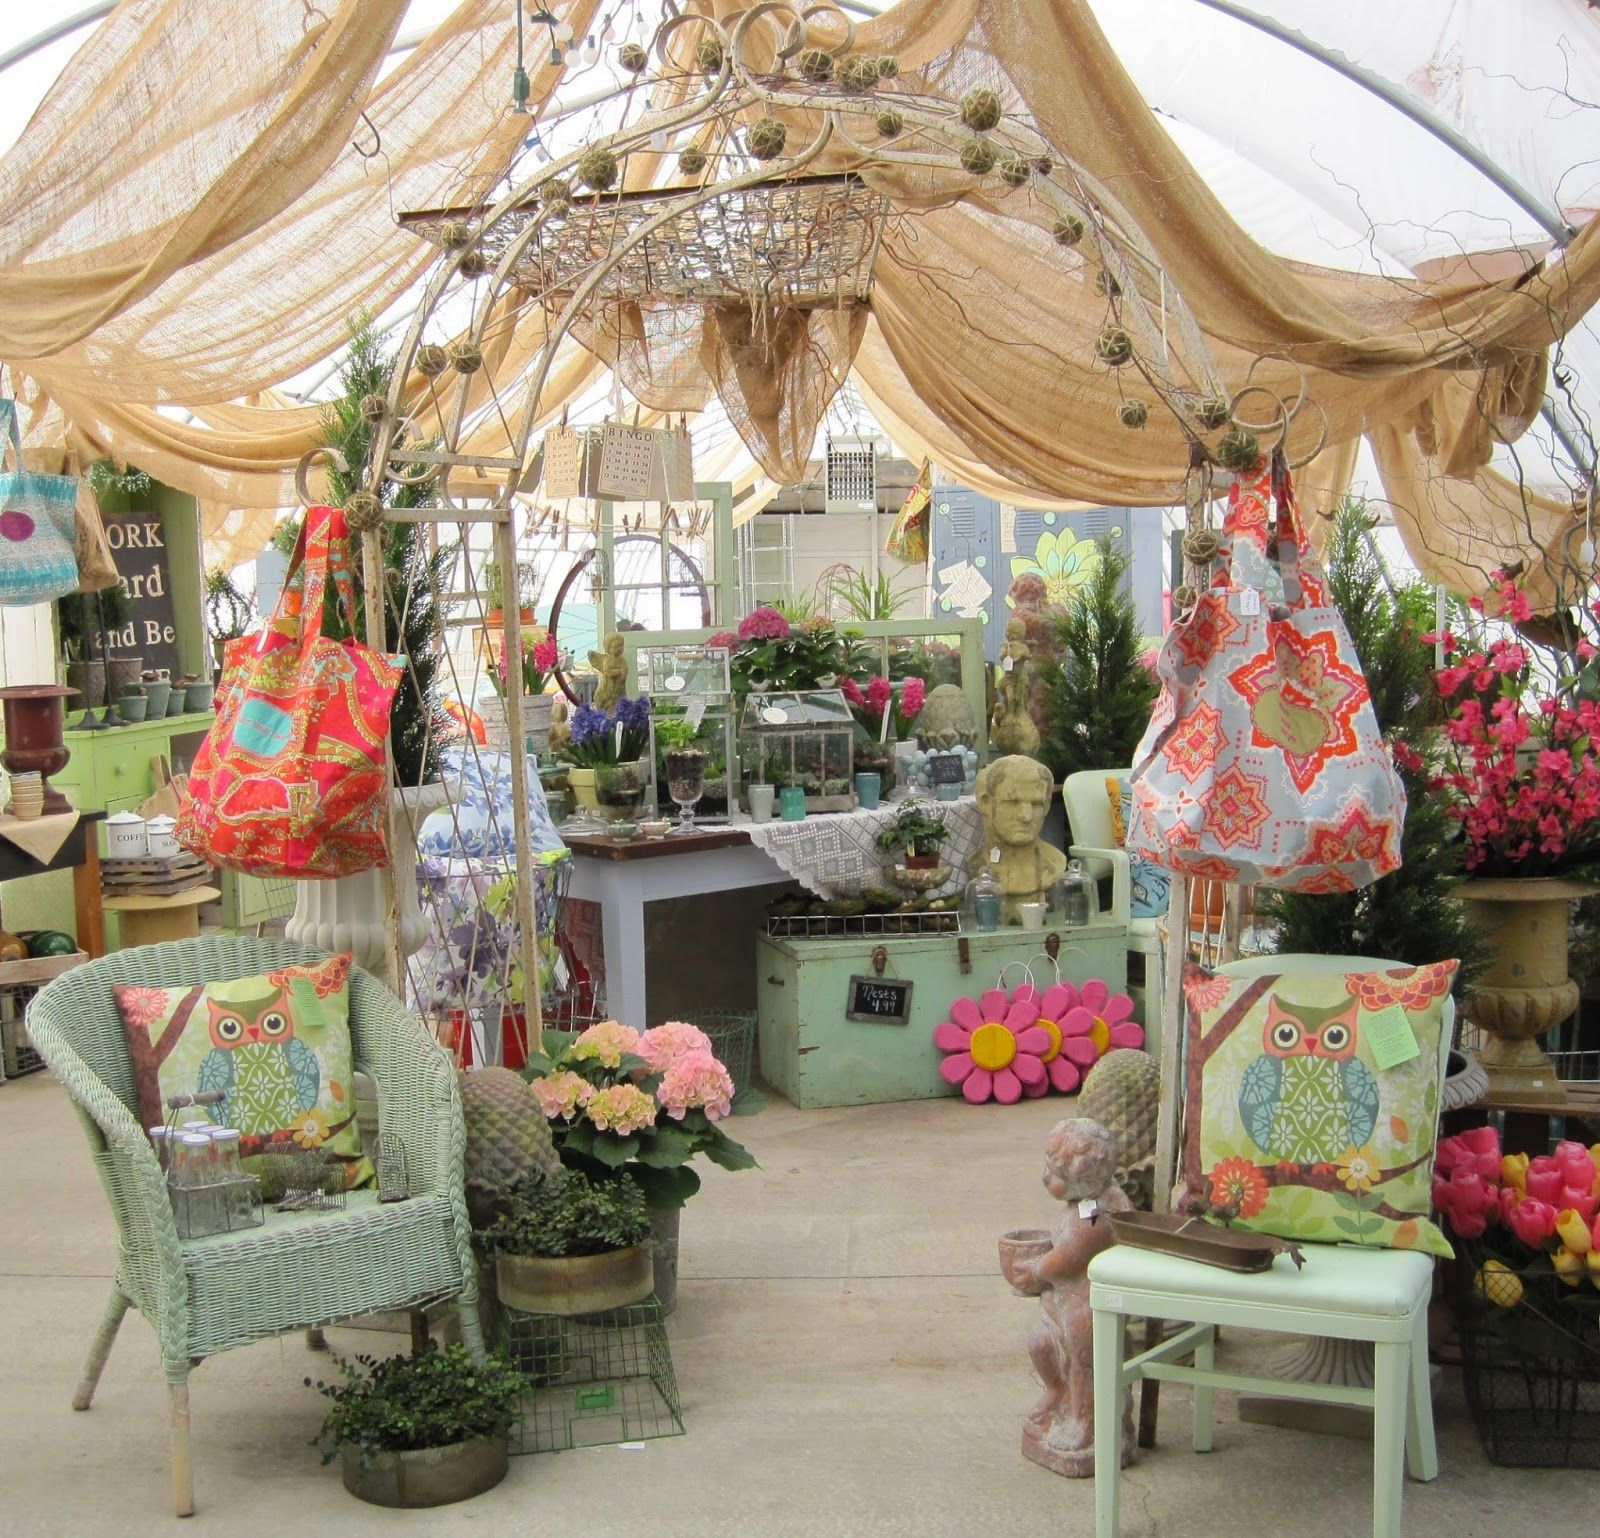 Everlasting Blooms vintage fun flea market booth ...